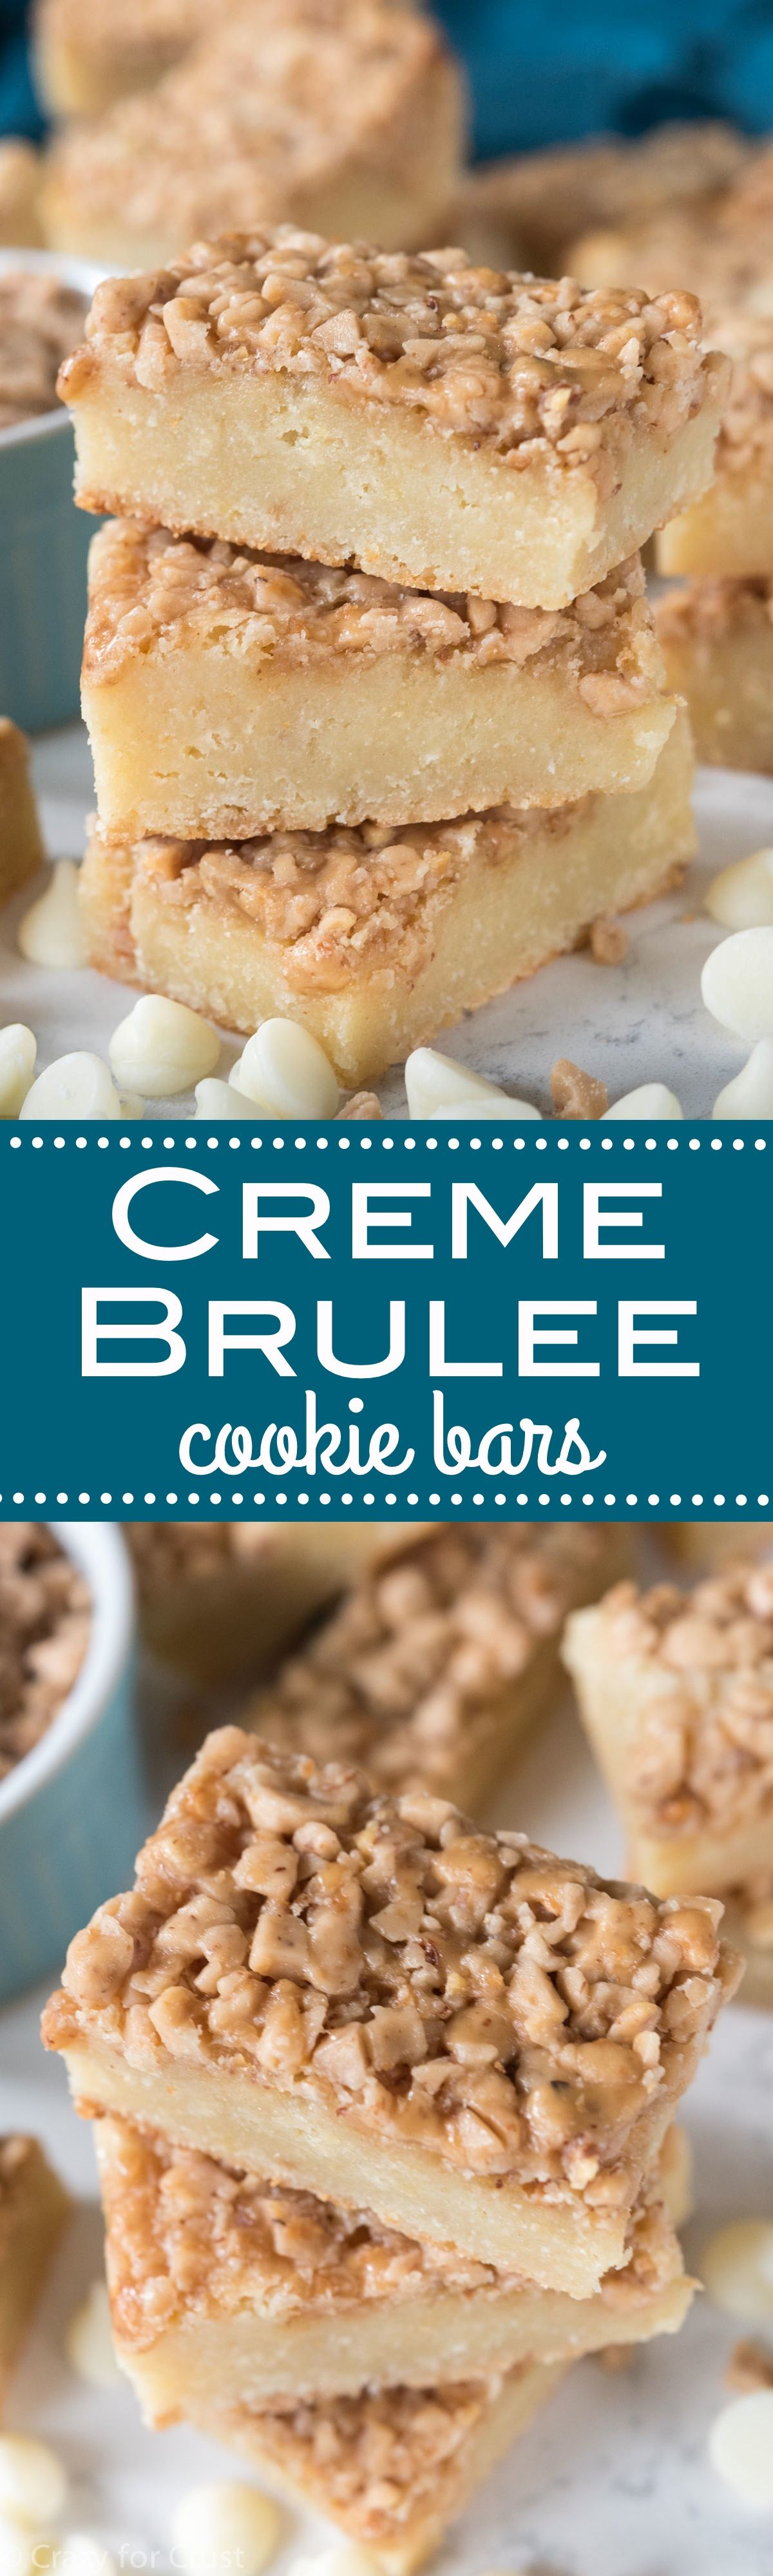 Easy quick cookie bar recipes